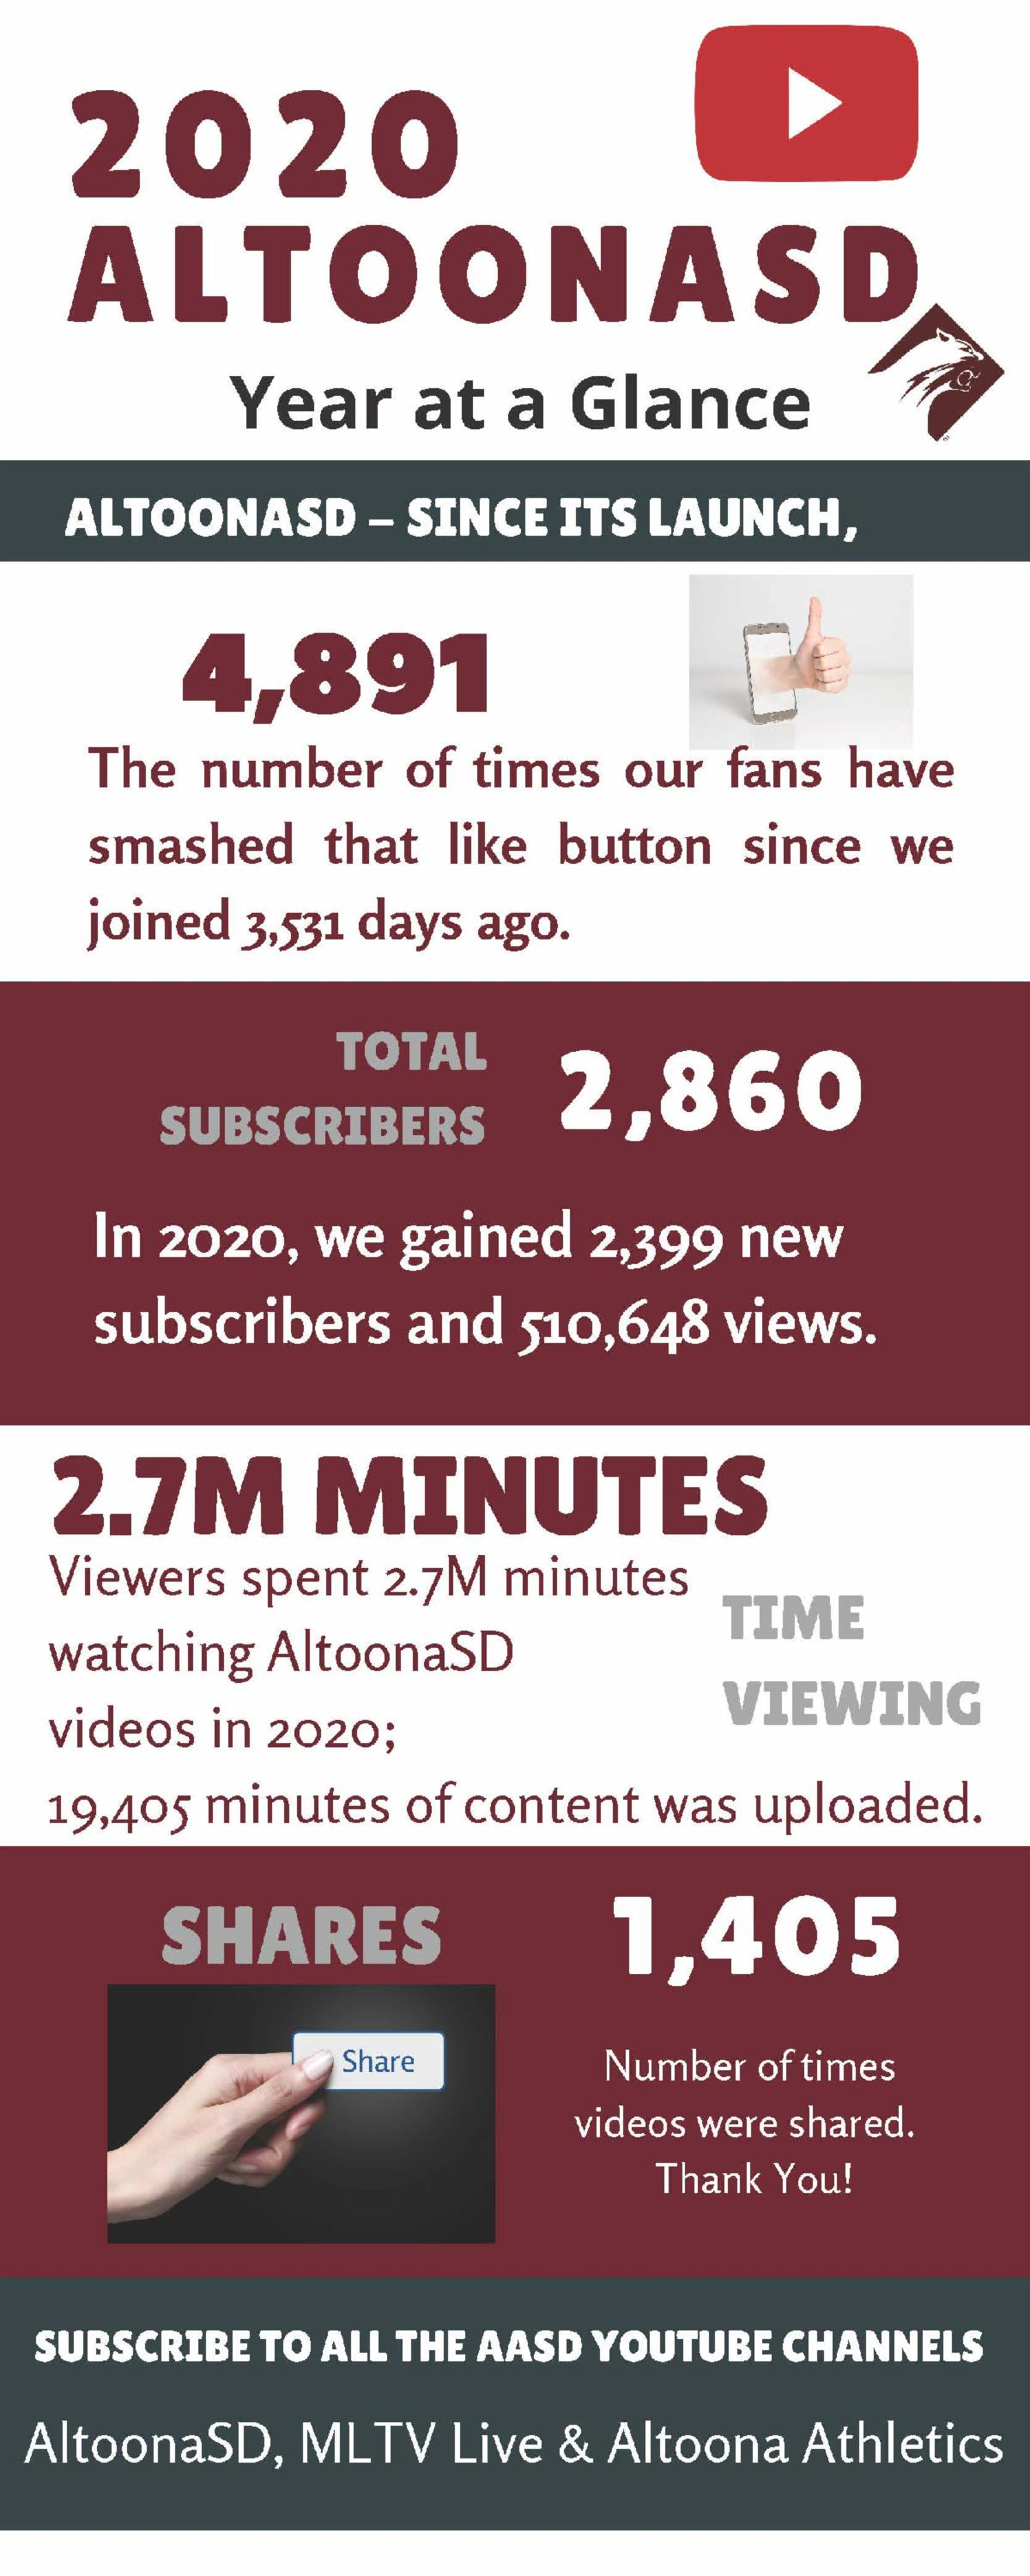 You Tube Analytics for 2020